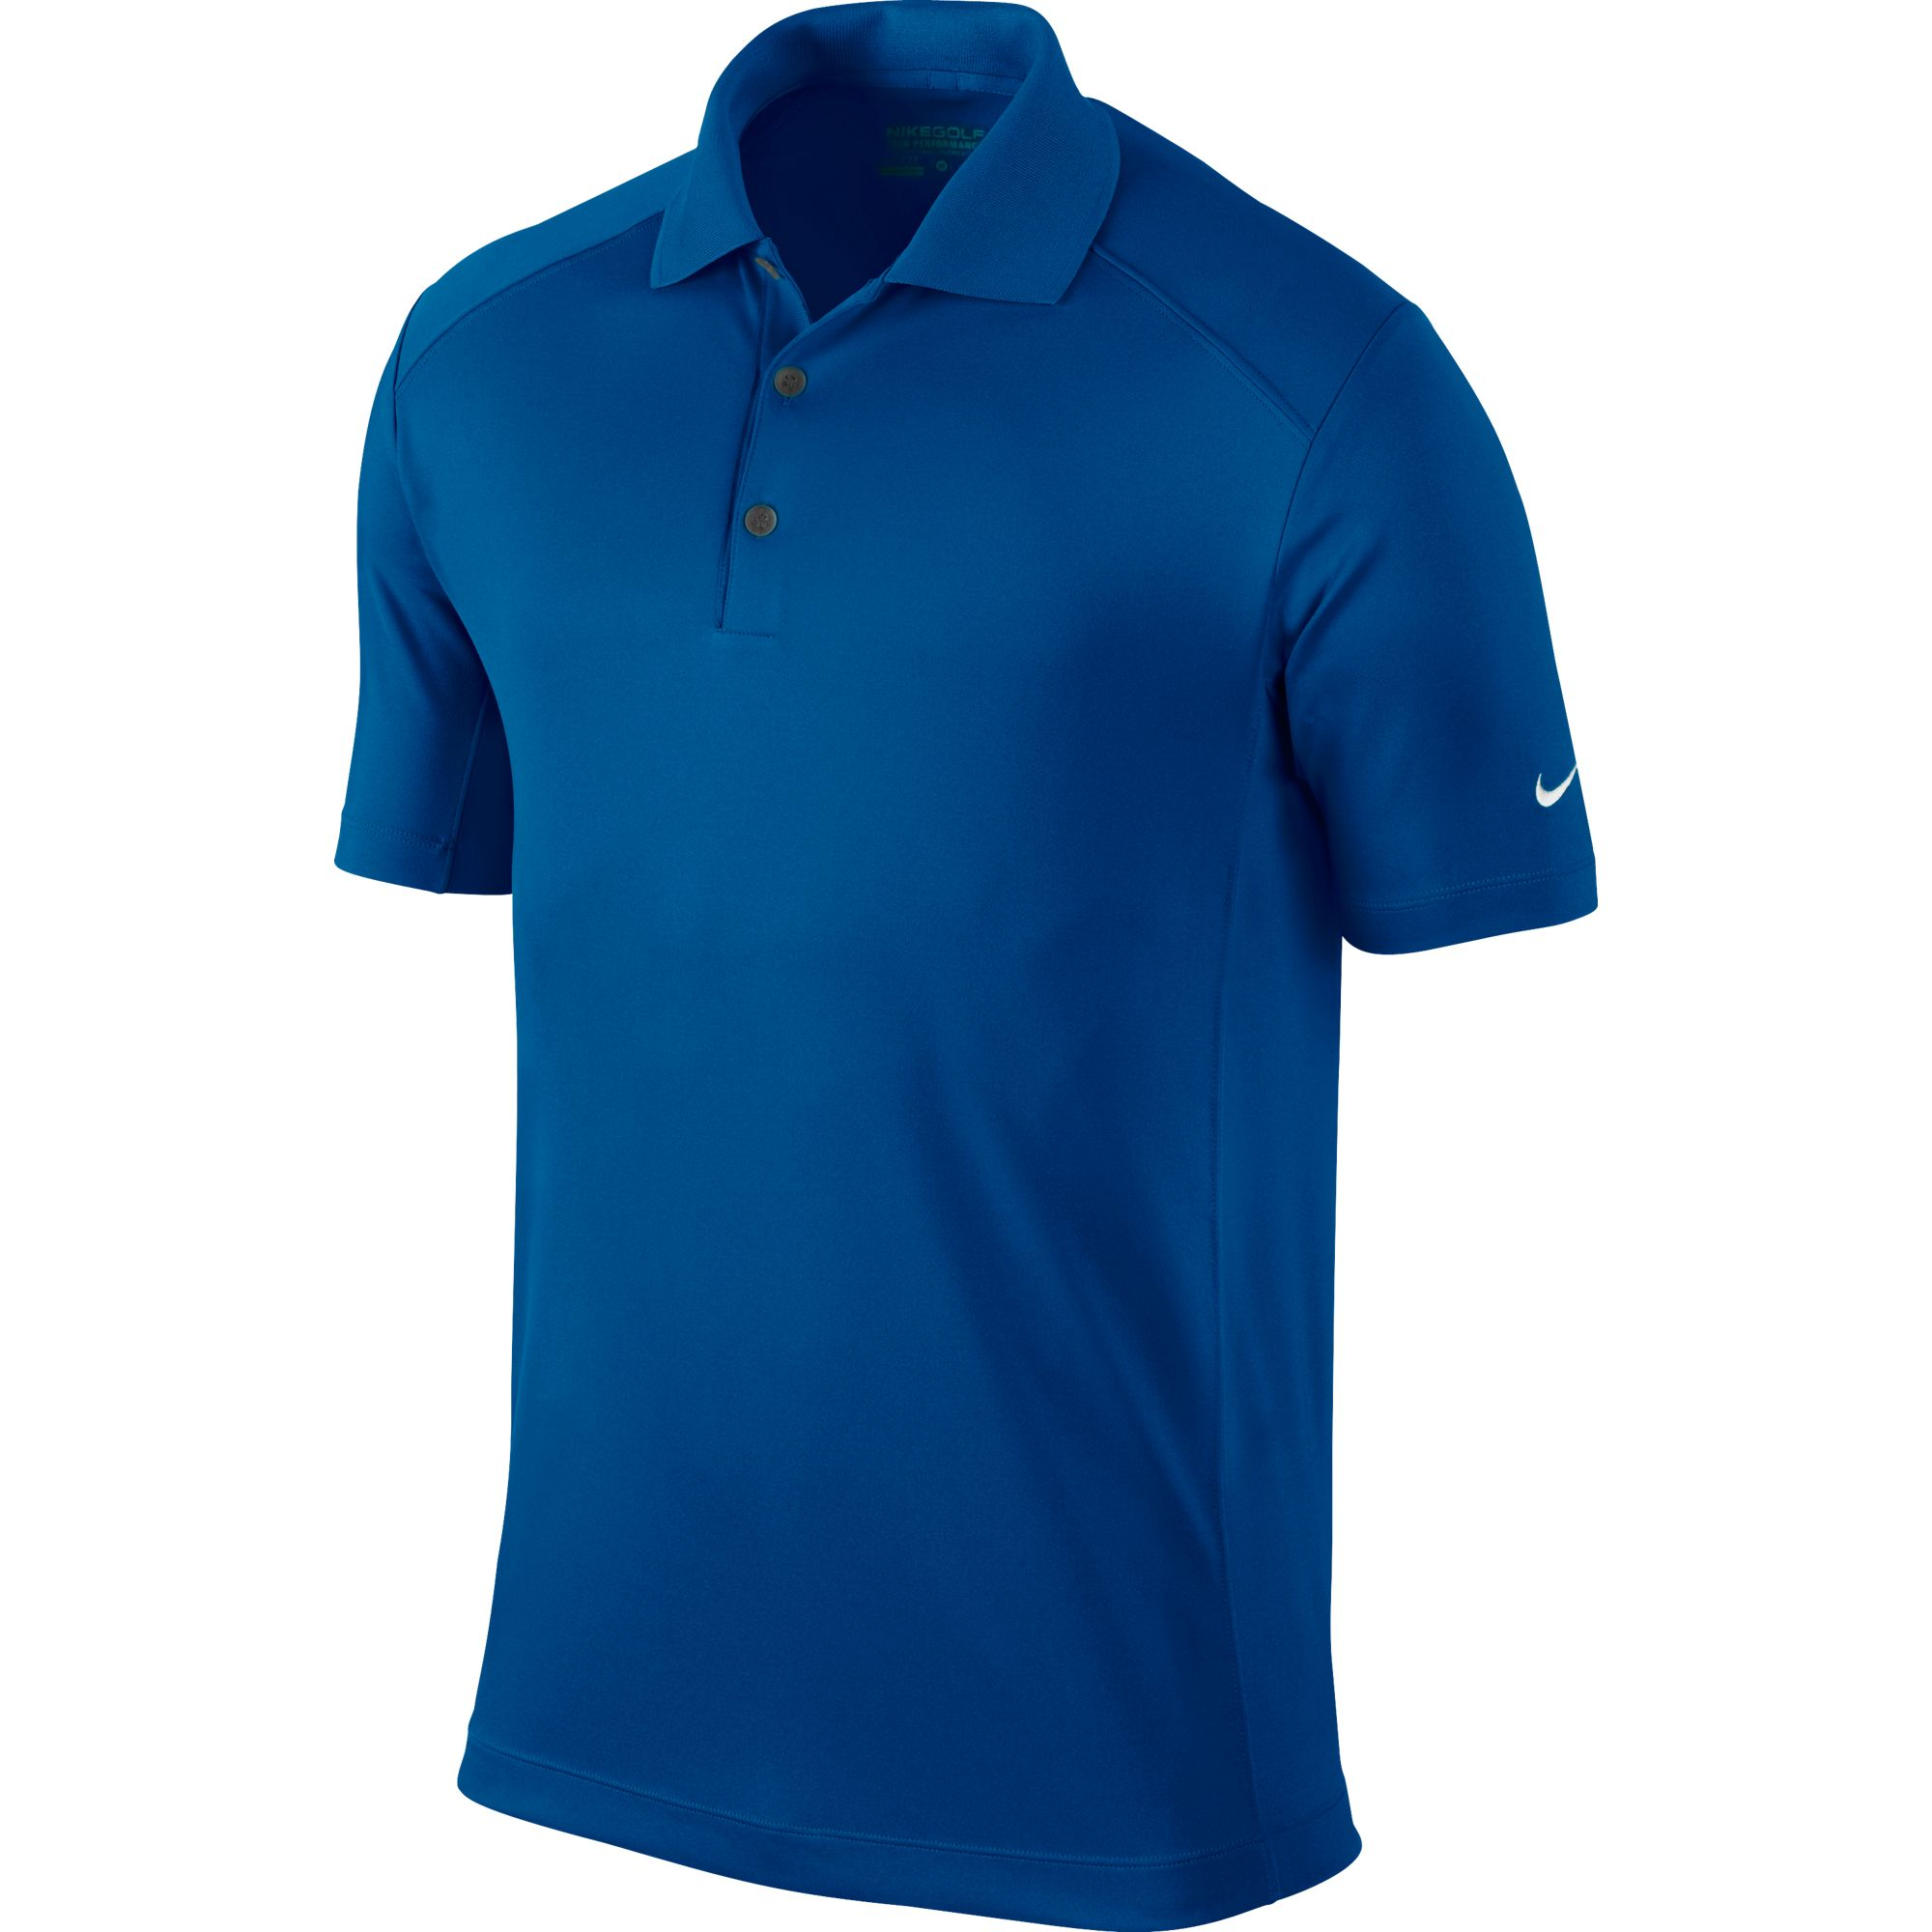 Men's Victory Solid Polo Golf Shirt, Royal Bl,Sapphire,Marine, swatch